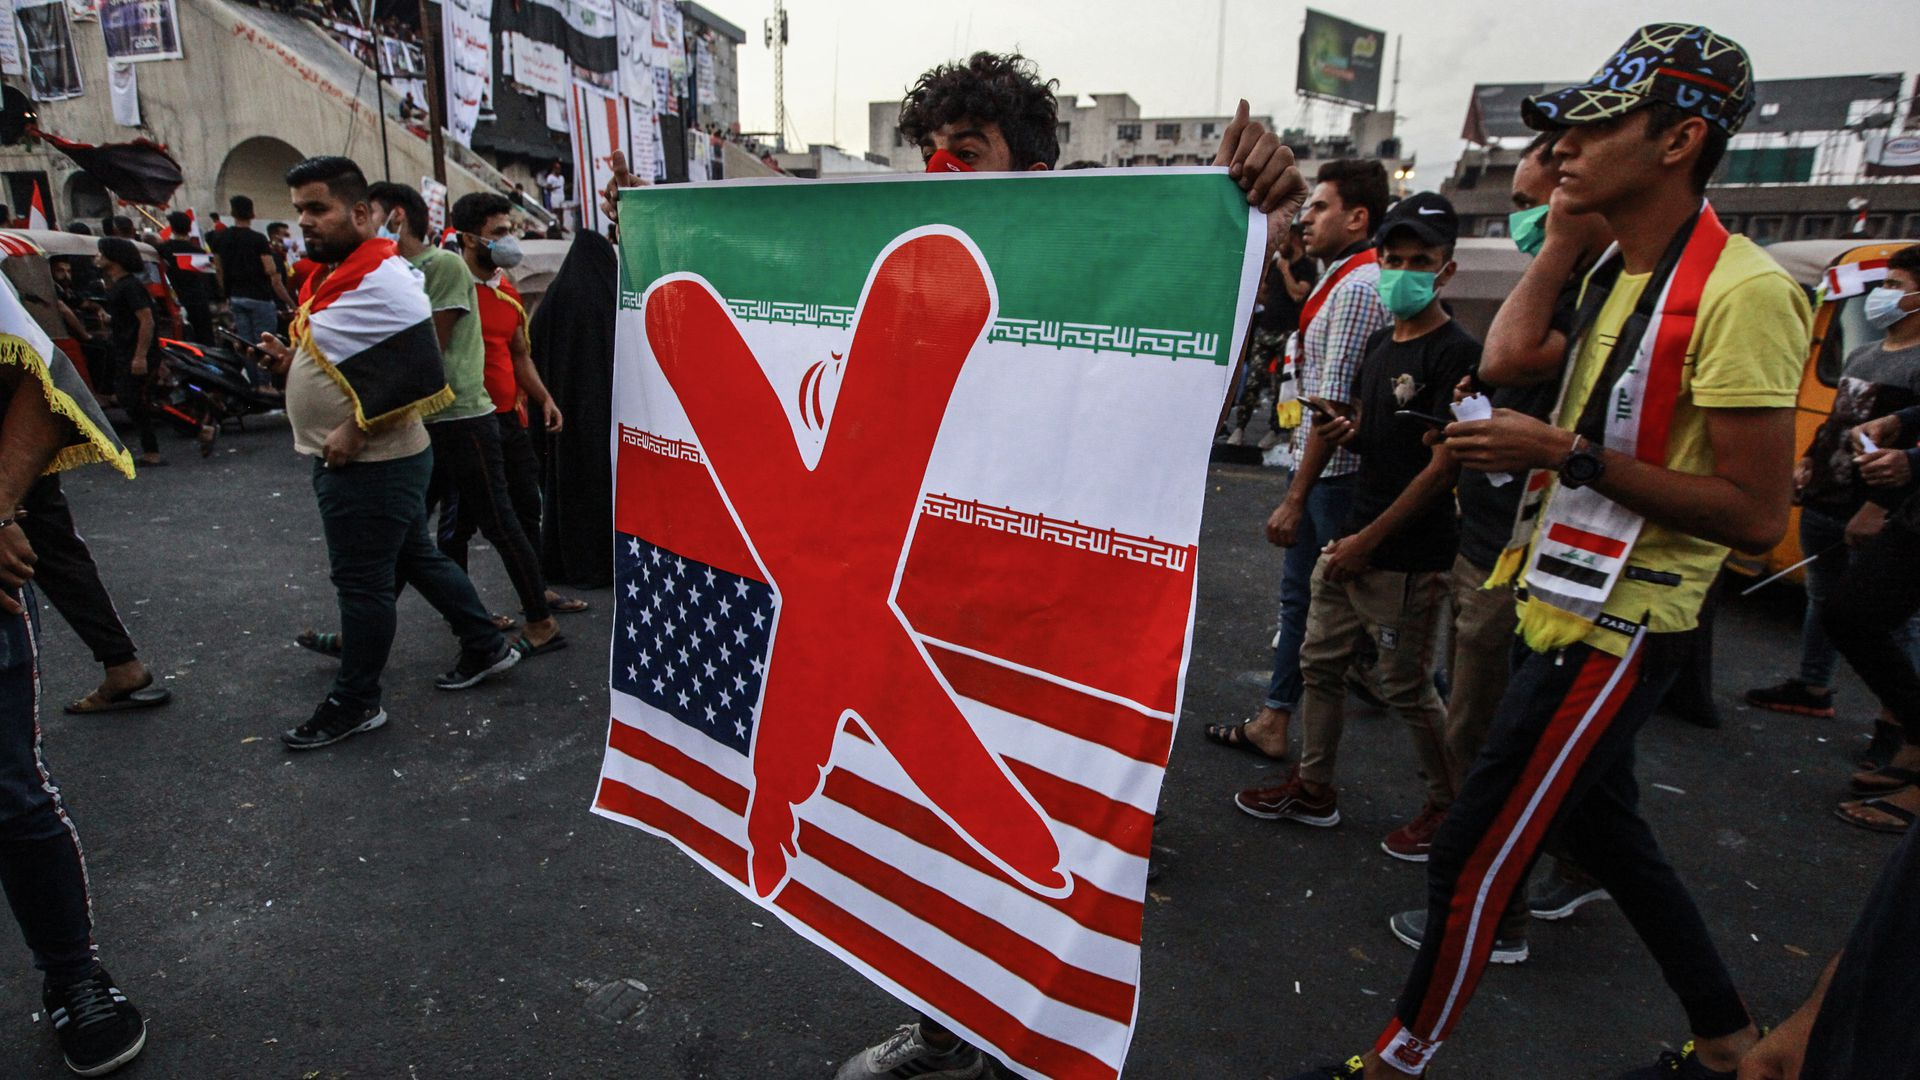 Secret cables expose Iran's influence-building in Iraq at U.S. expense